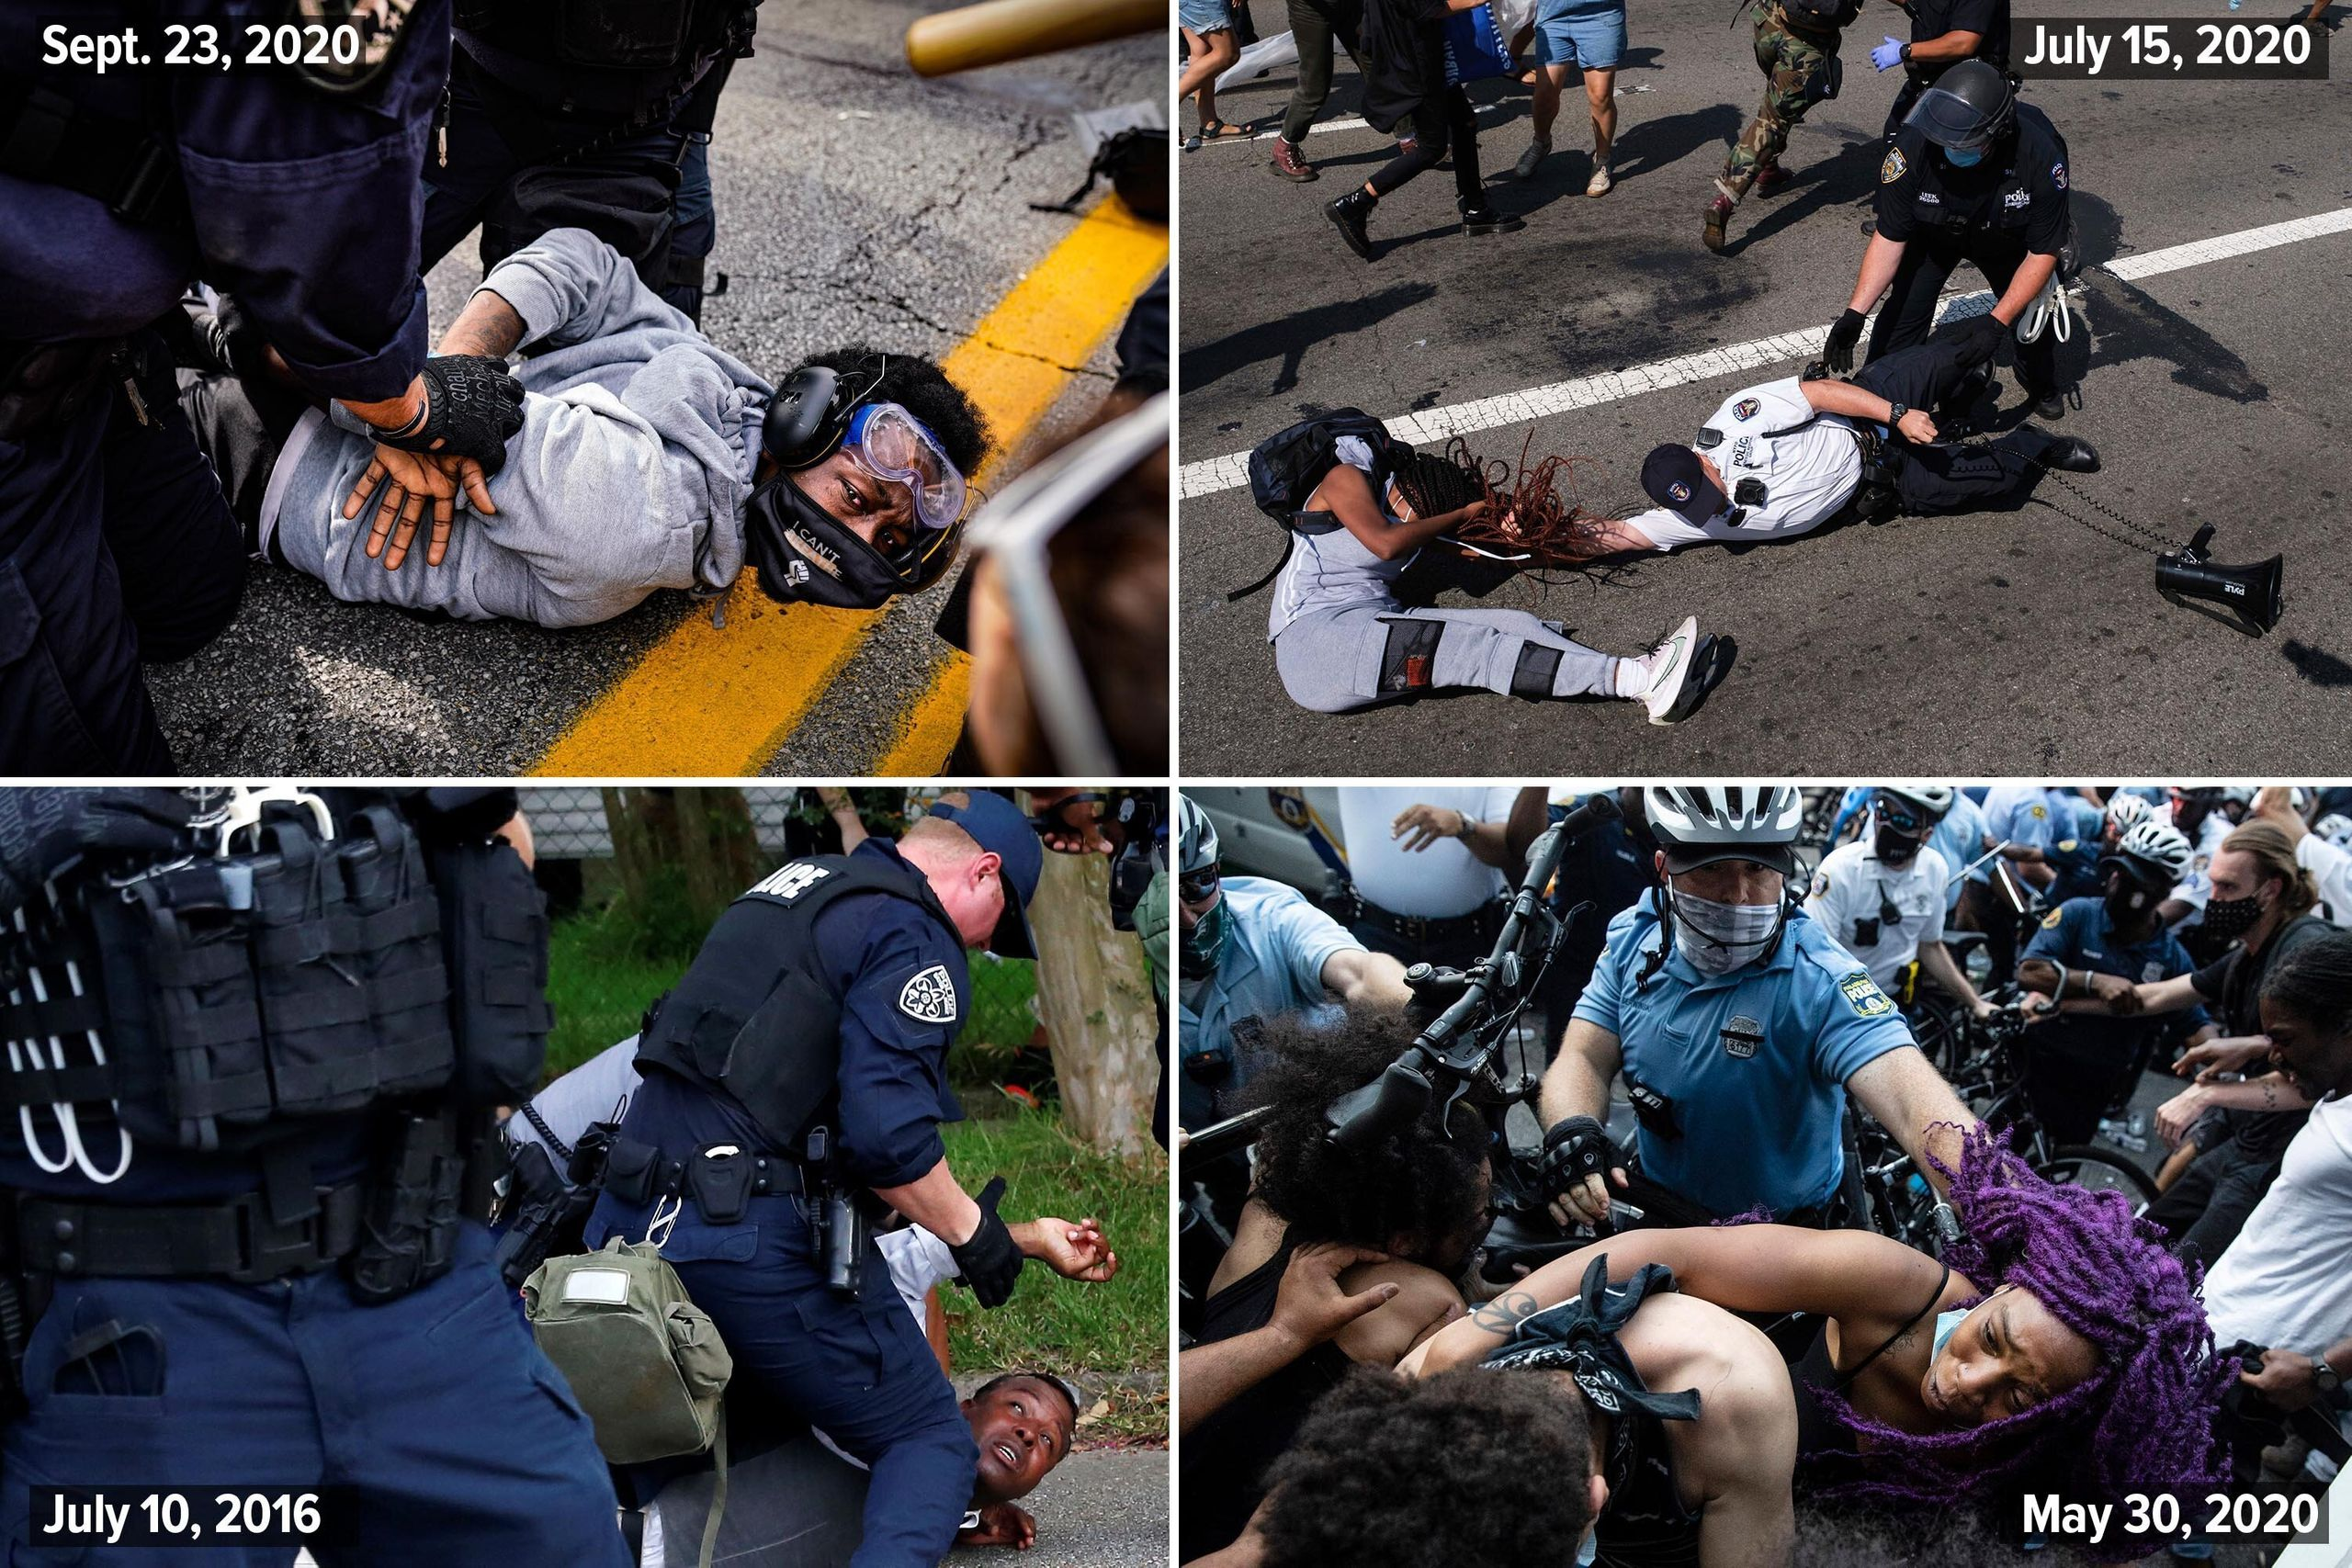 Top left: Riot police arrest antiracist protesters in Louisville, Kentucky, on Sept. 23, 2020. Top right: A Black Lives Matte